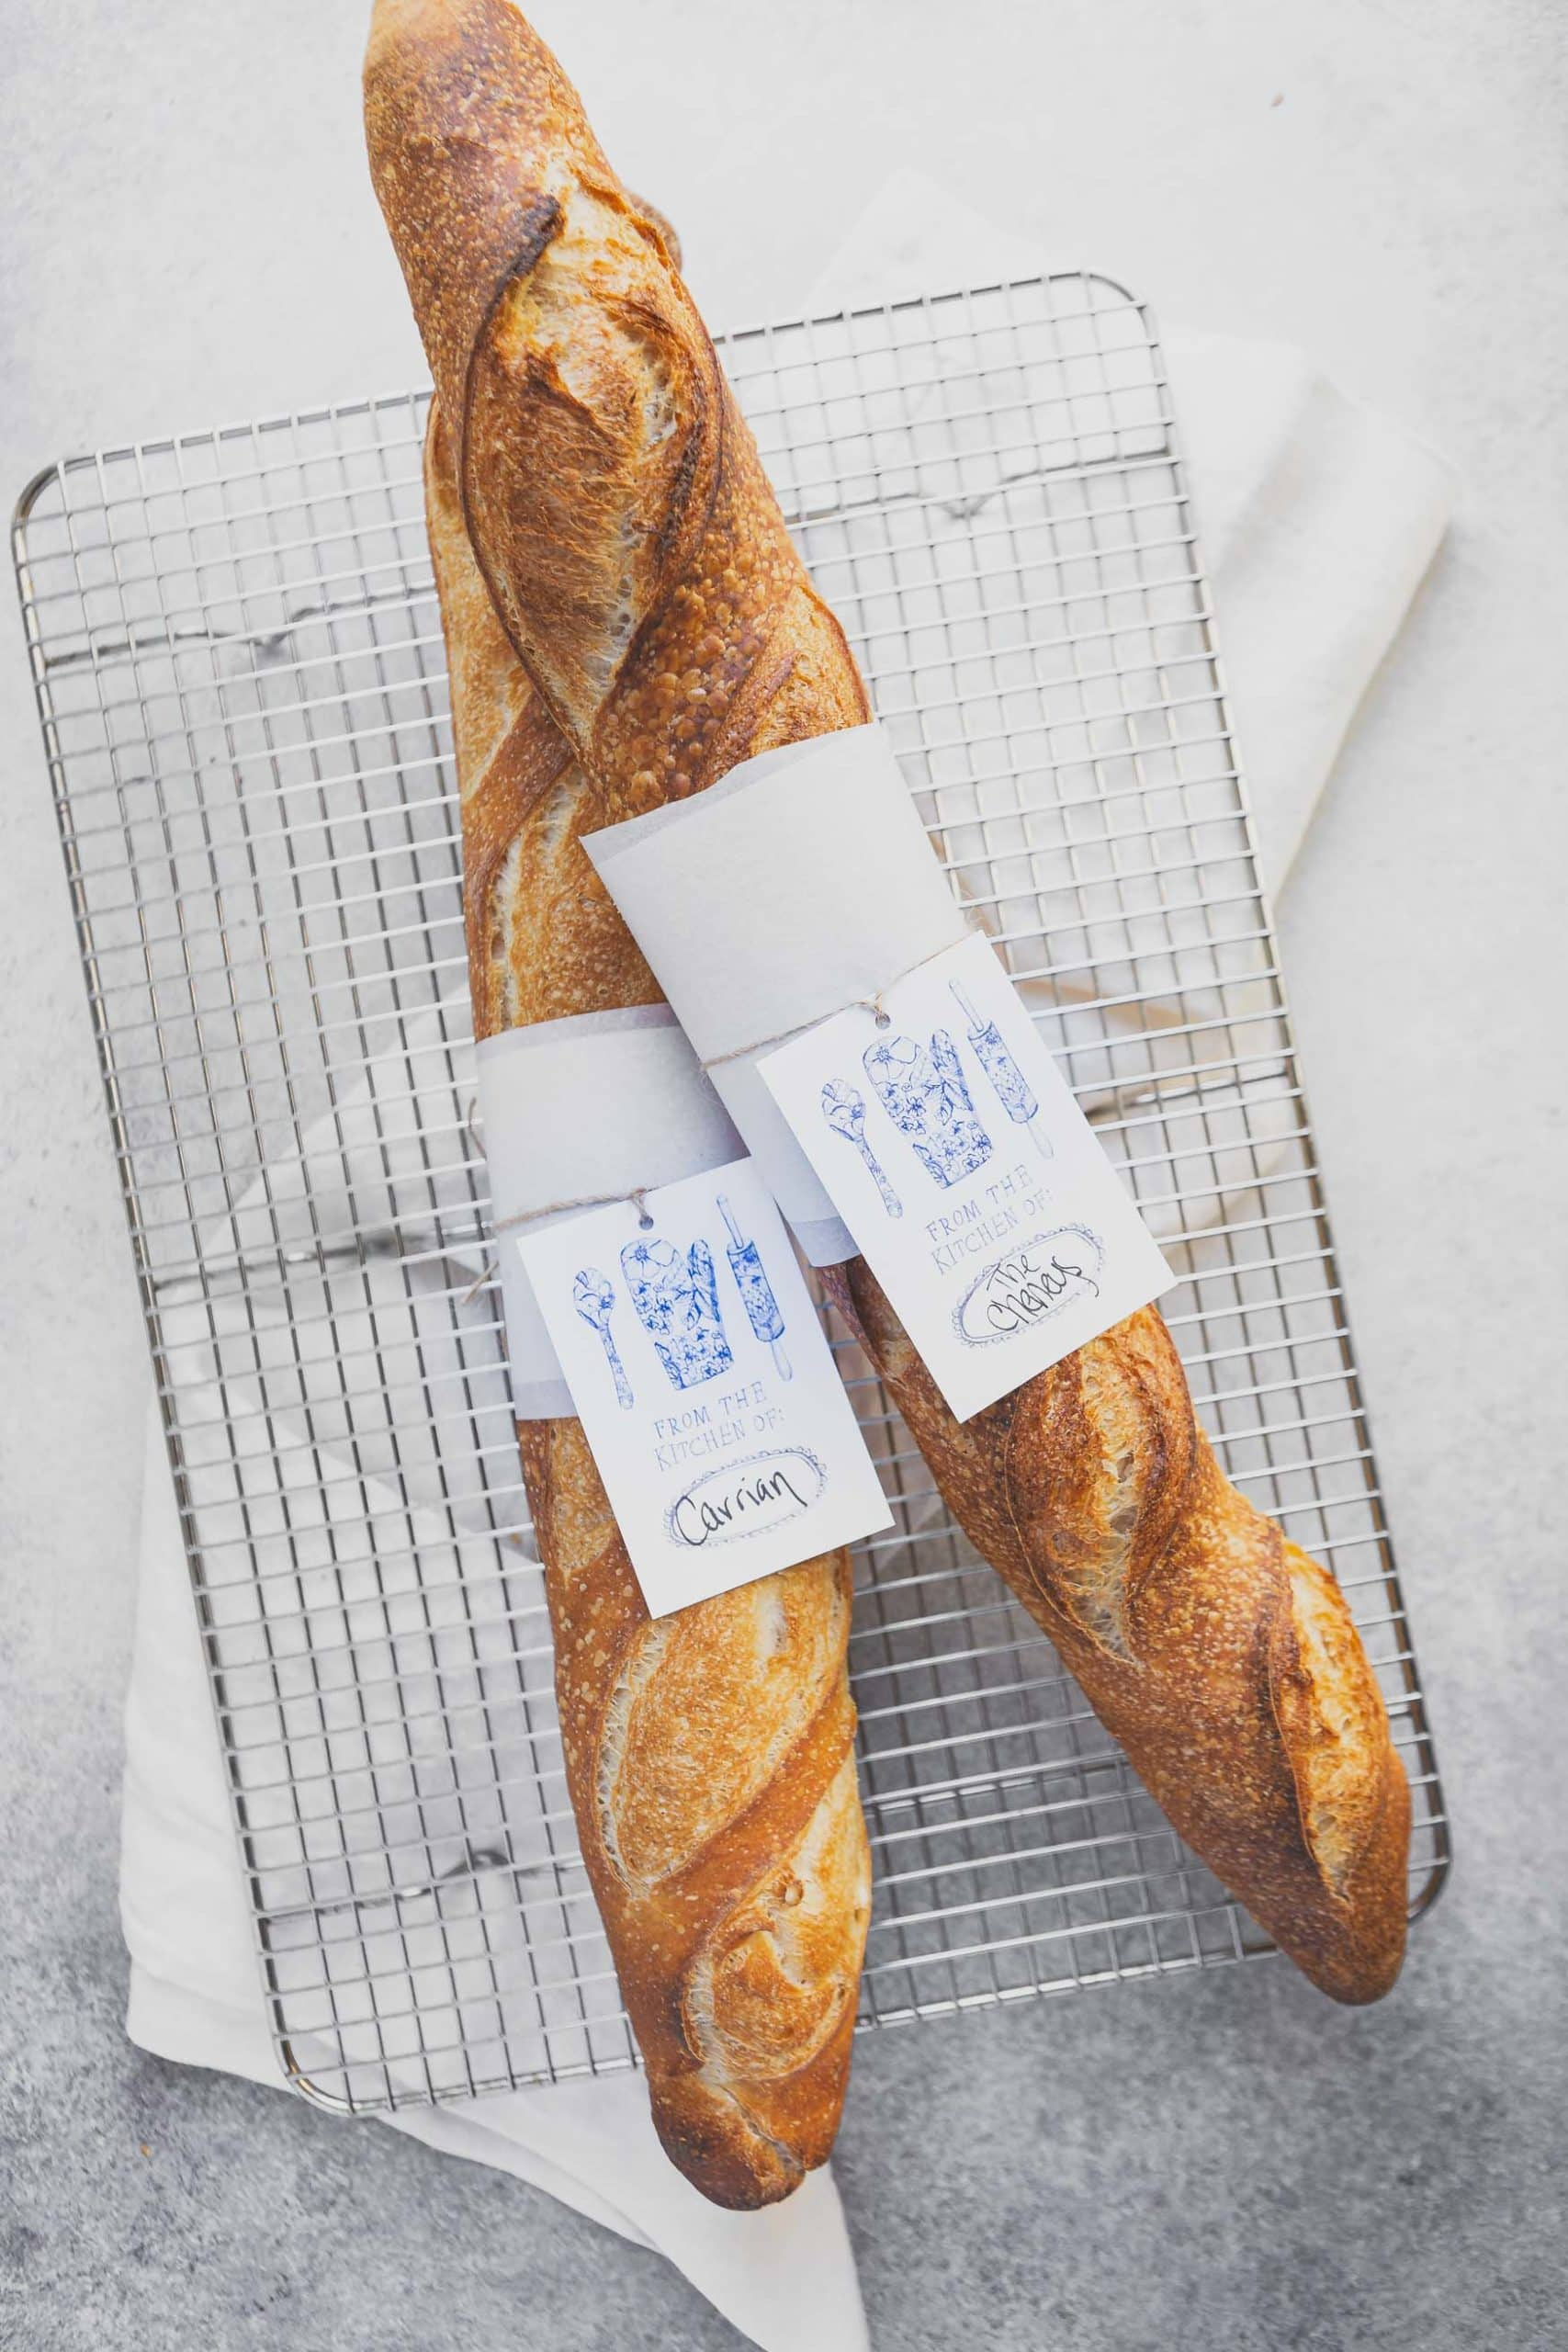 Two freshly baked baguettes on a cooling rack. The baguettes have a paper wrap and tag around the center of the loaf.